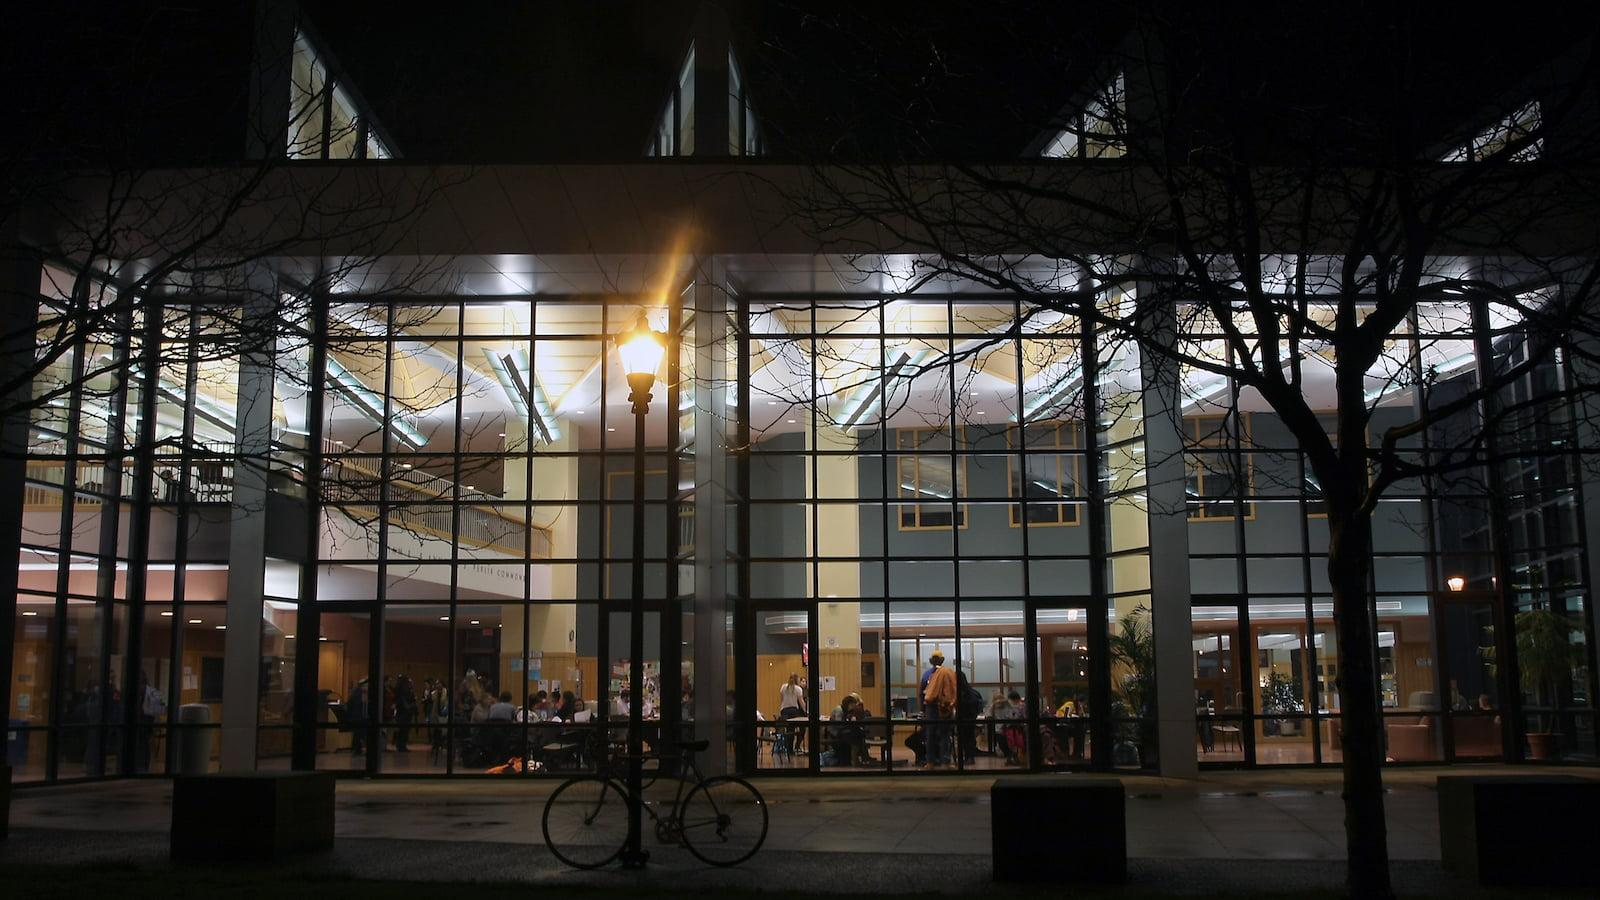 Students studying in the Science Center atrium at night.